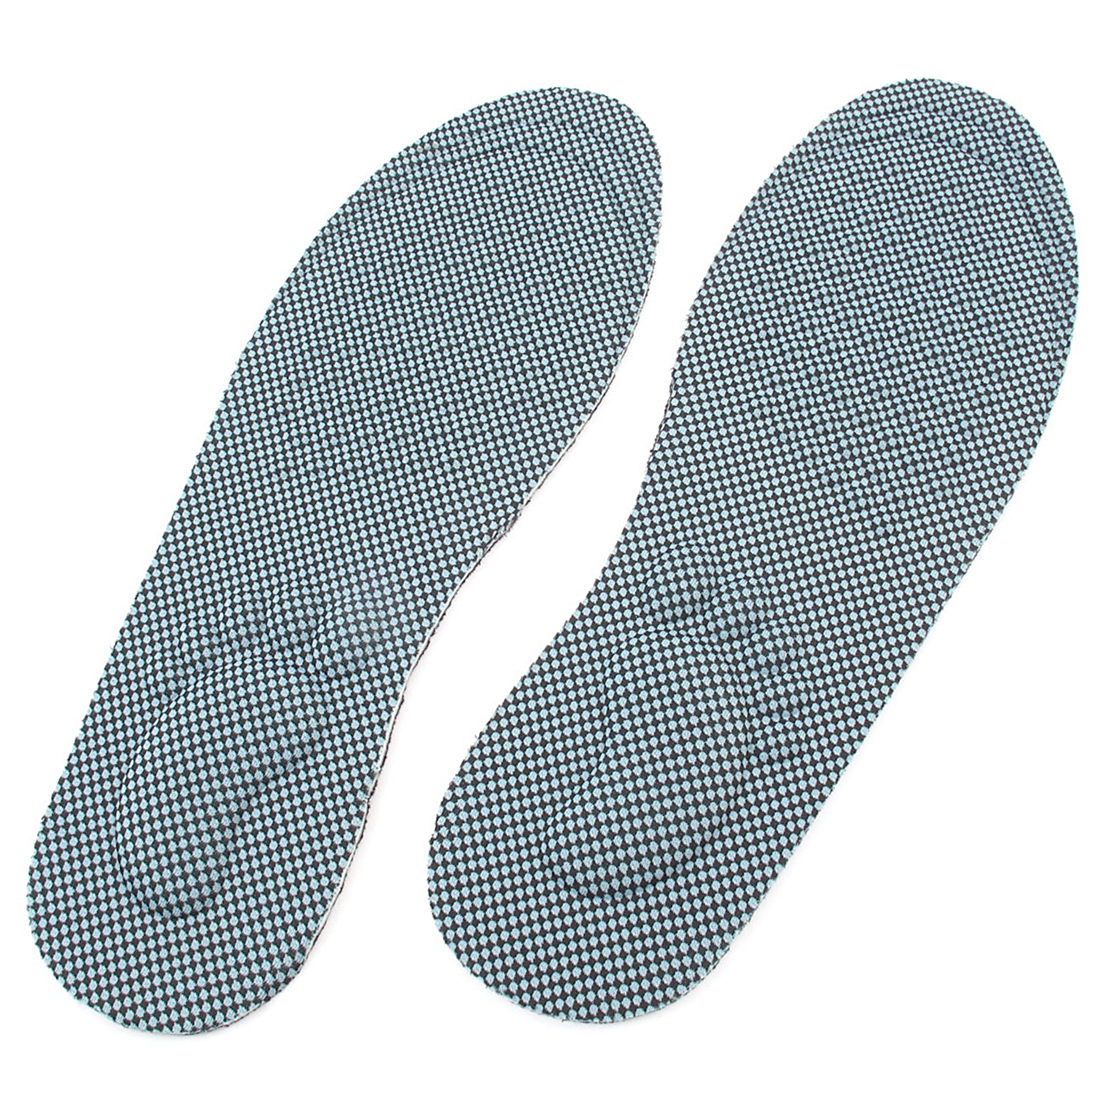 Arch Flat Adjustable Man Insoles Feet Care Pads Pair Blue US 10.5